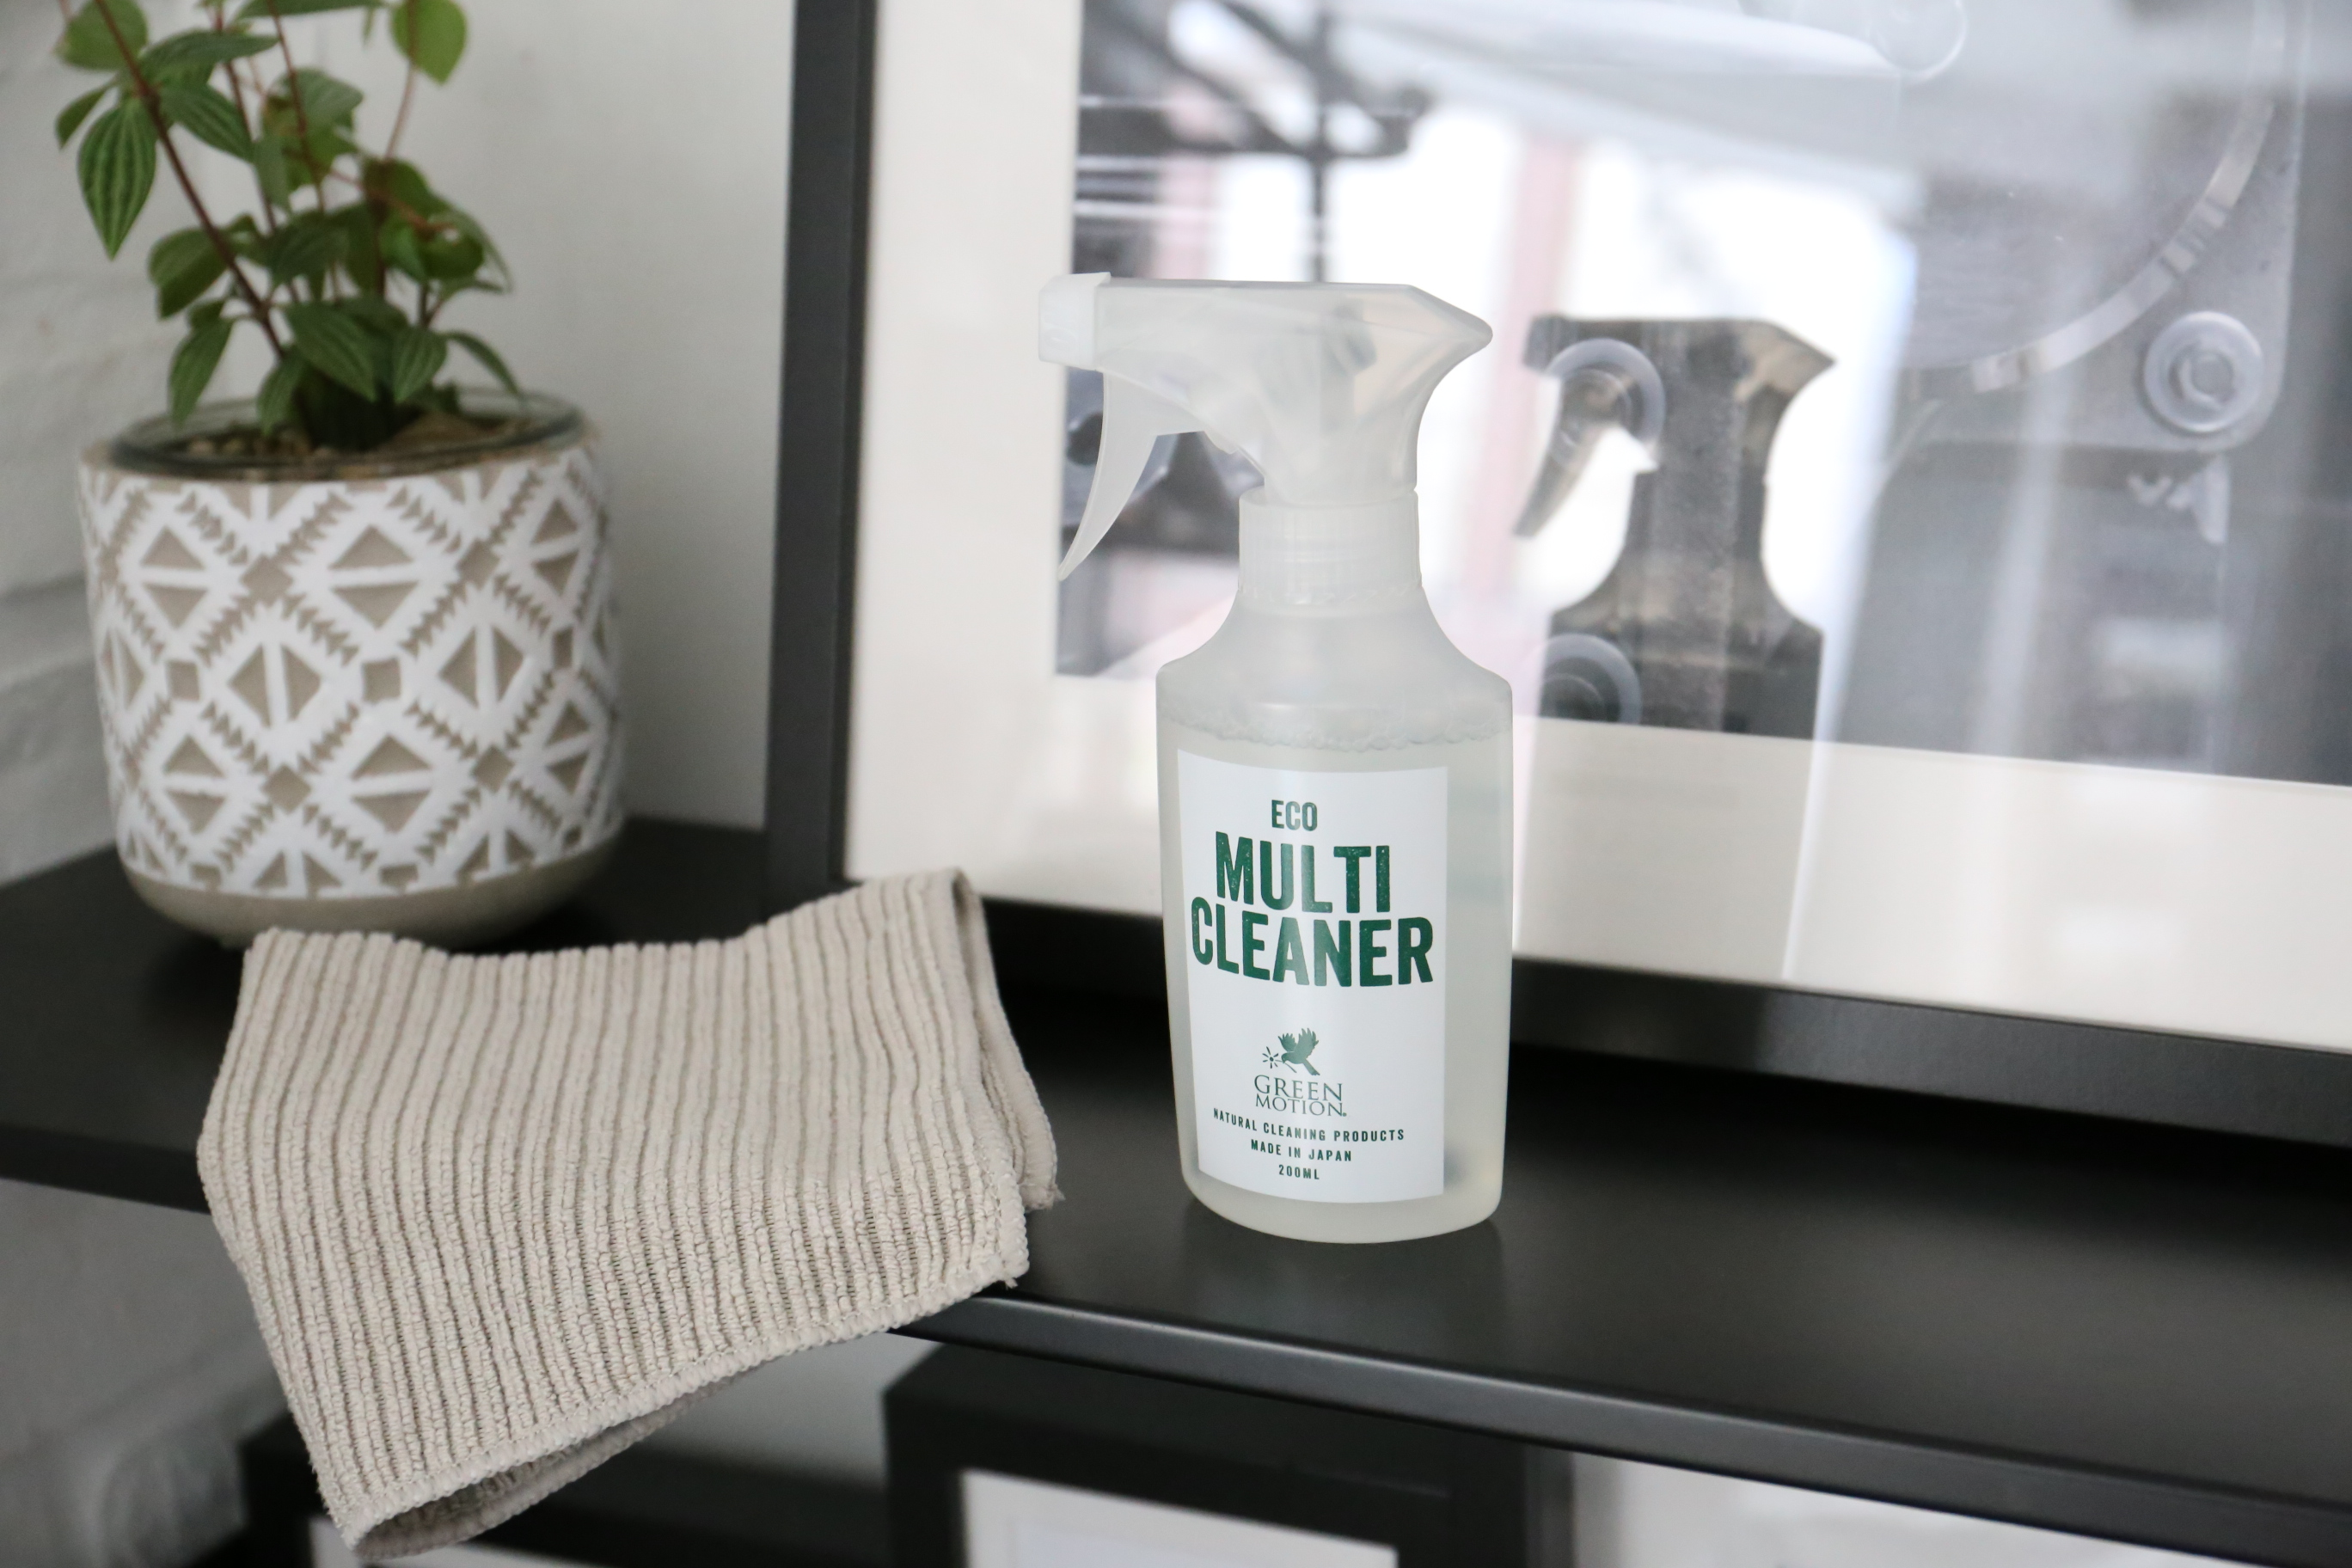 ECO MULTI CLEANER SERIES